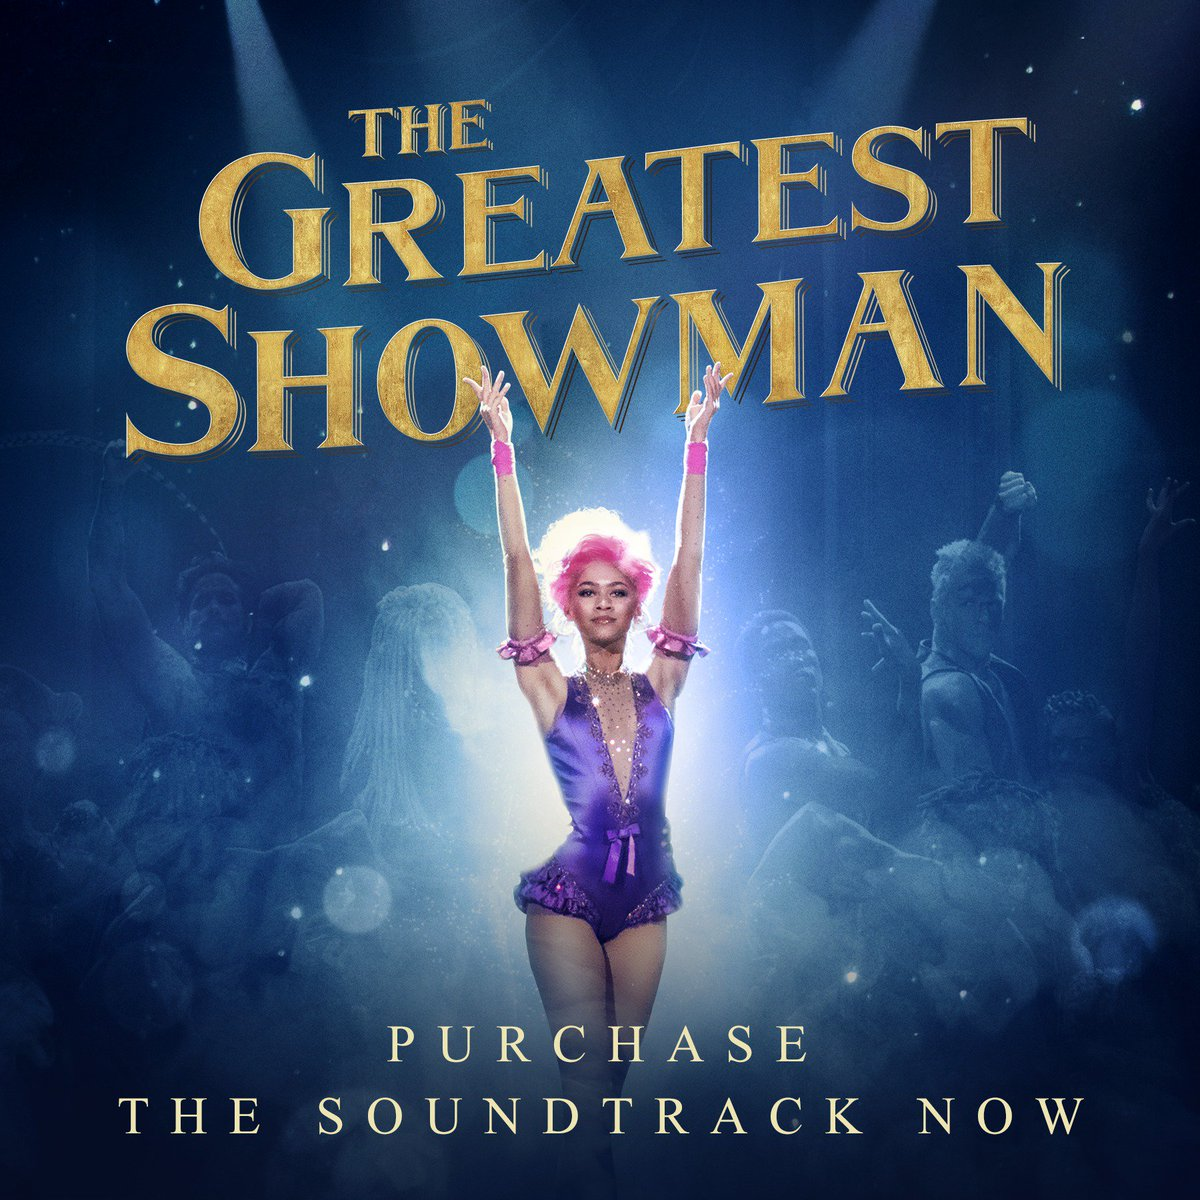 The Greatest Showman On Twitter Quot Make 2018 Magical With